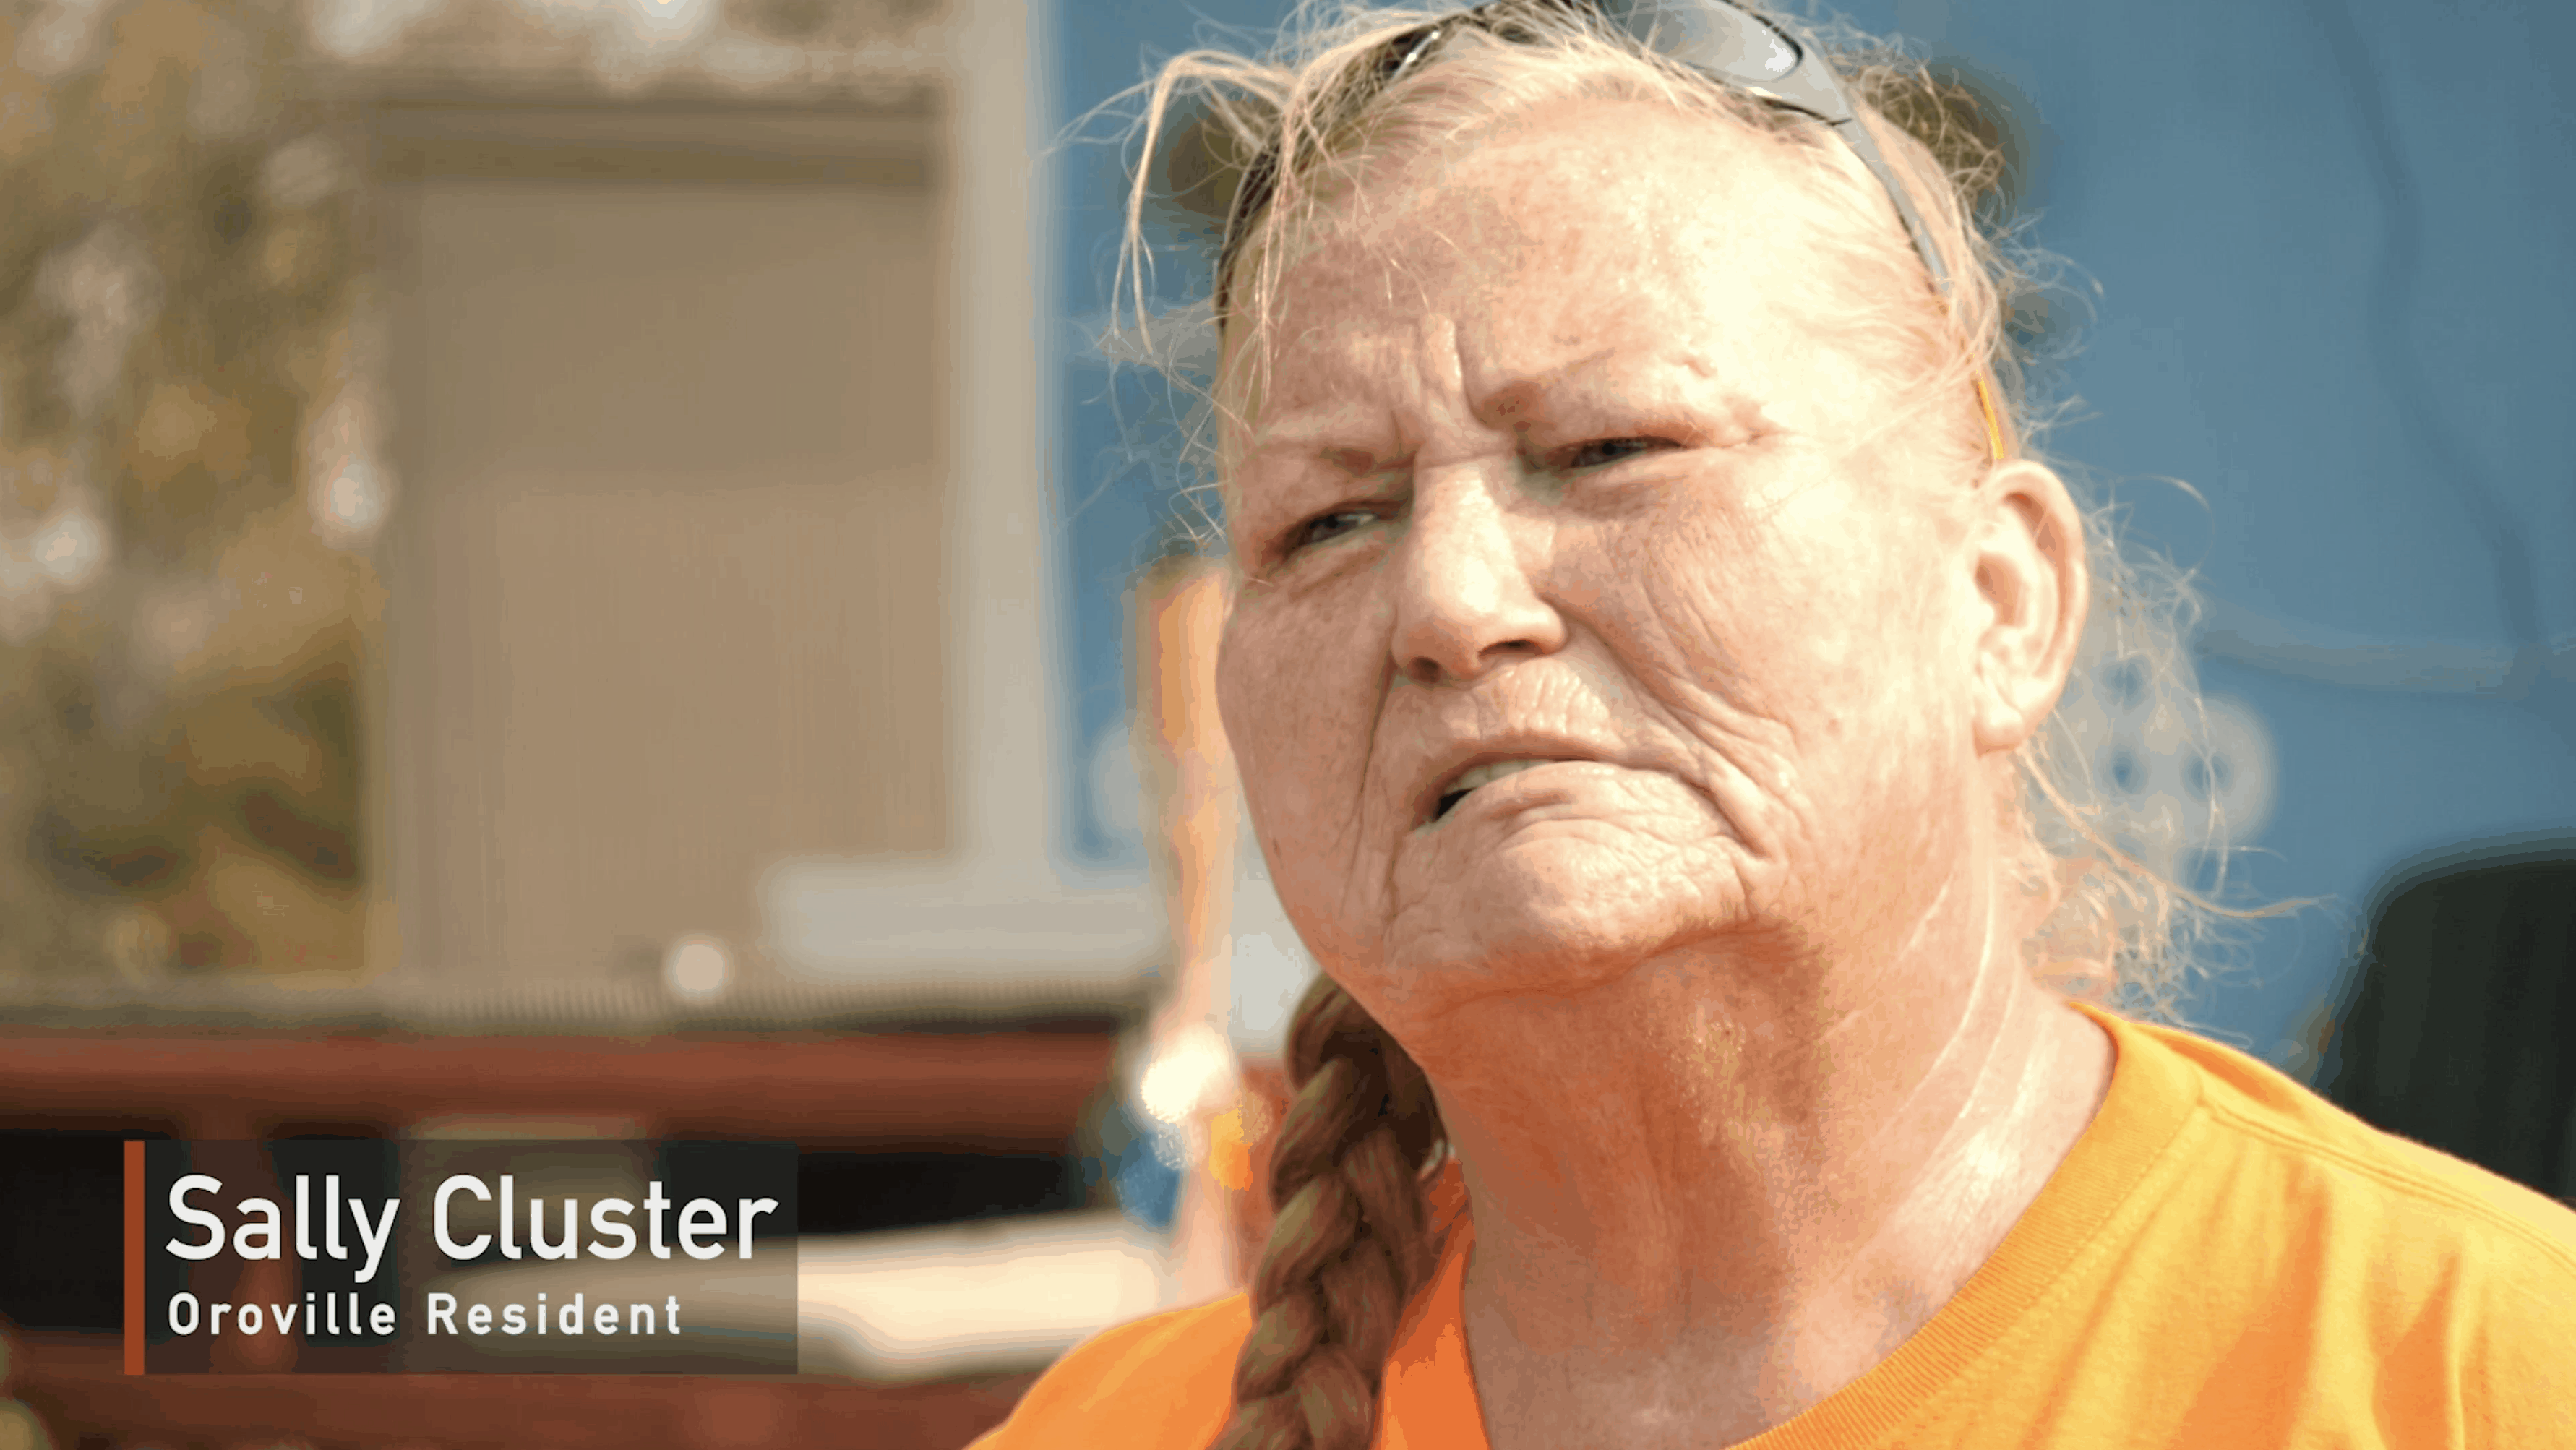 Sally Cluster, Oroville Resident from the 'Tiny Homes for Camp Fire Survivors' project